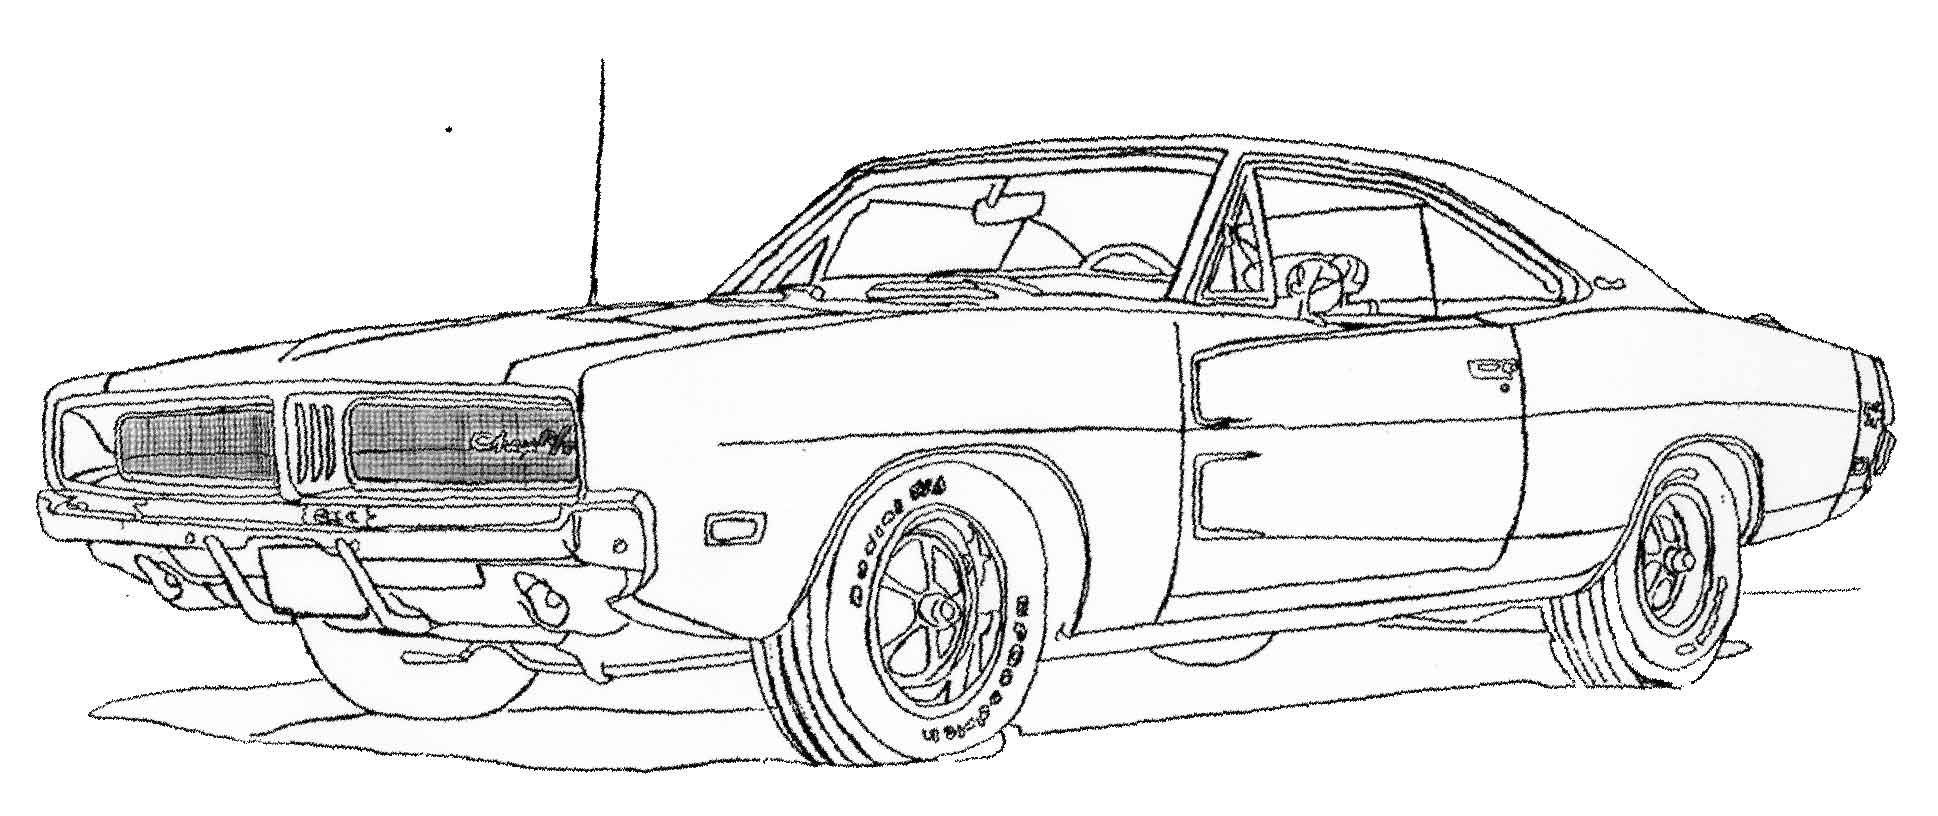 Coloriage Camaro Les Beaux Dessins De Transport 224 Dodge Charger Para Colorir